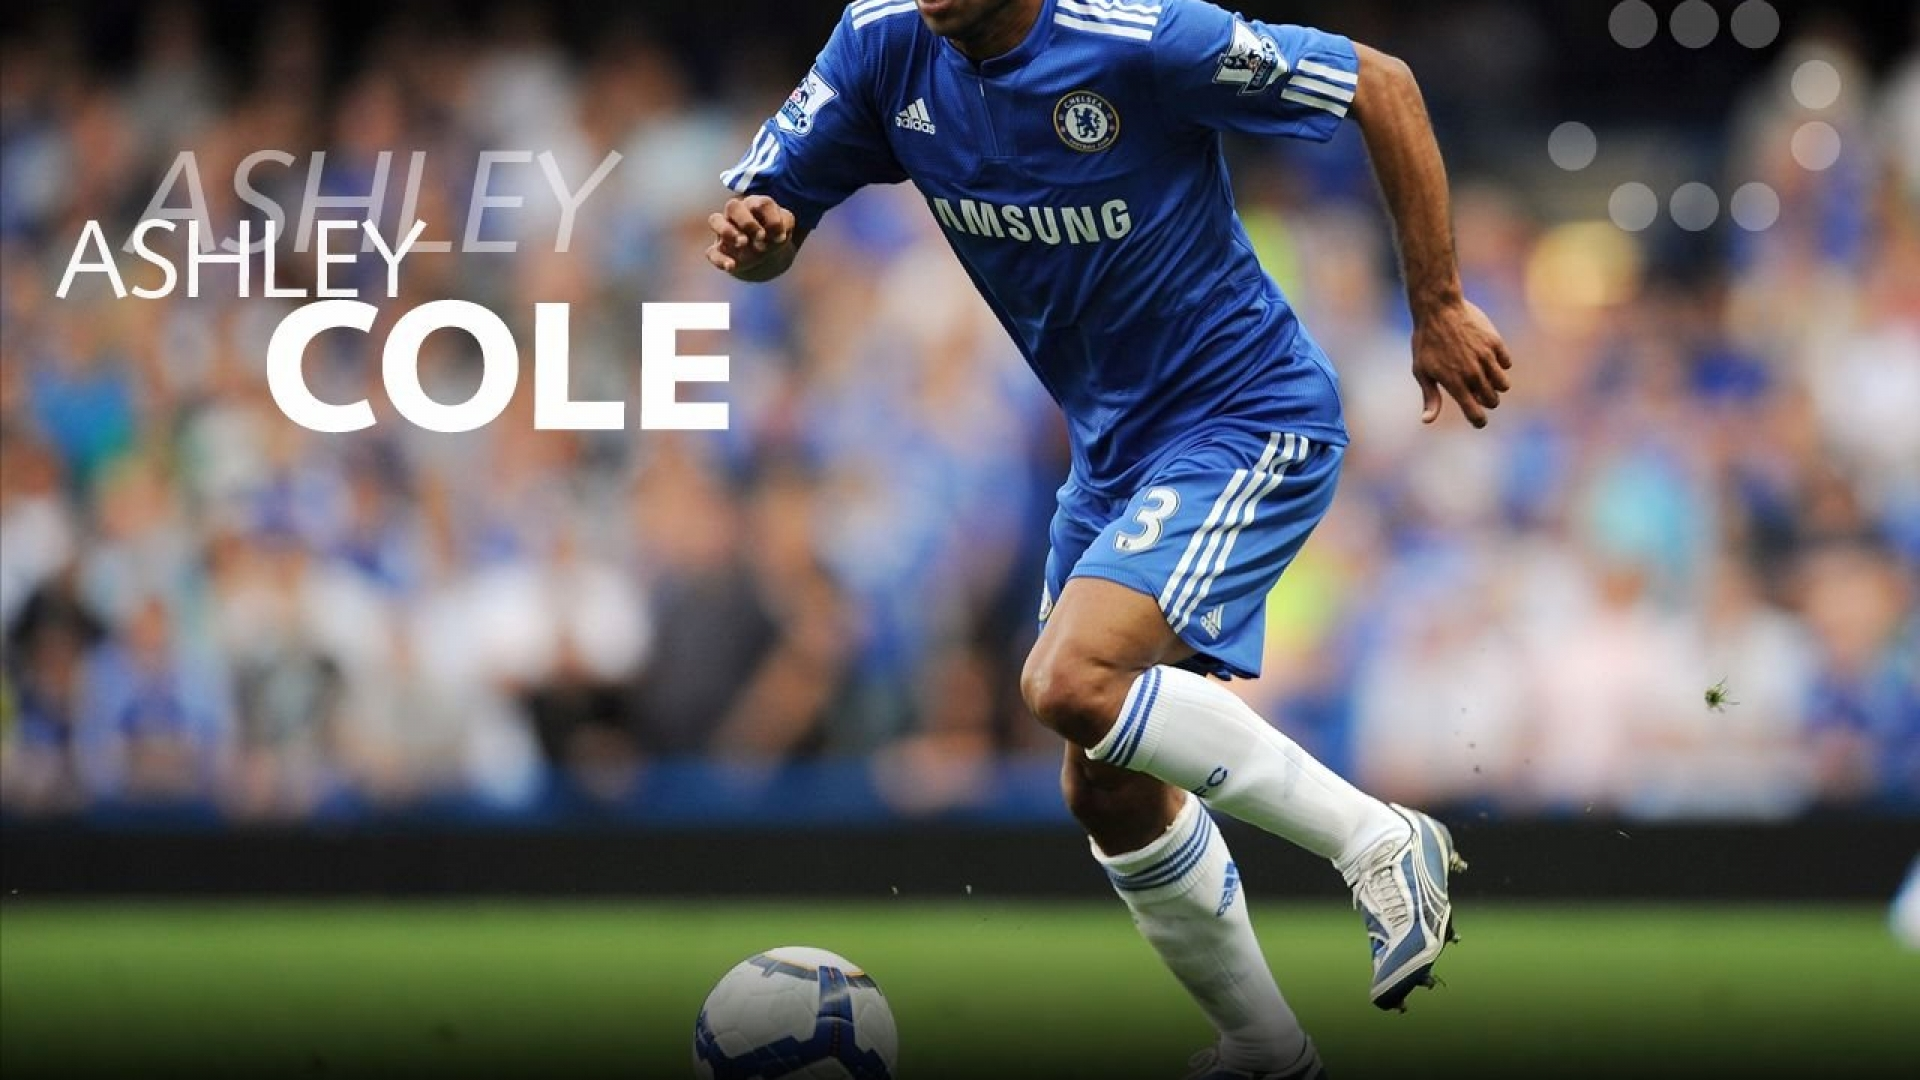 Ashley Cole Wallpaper